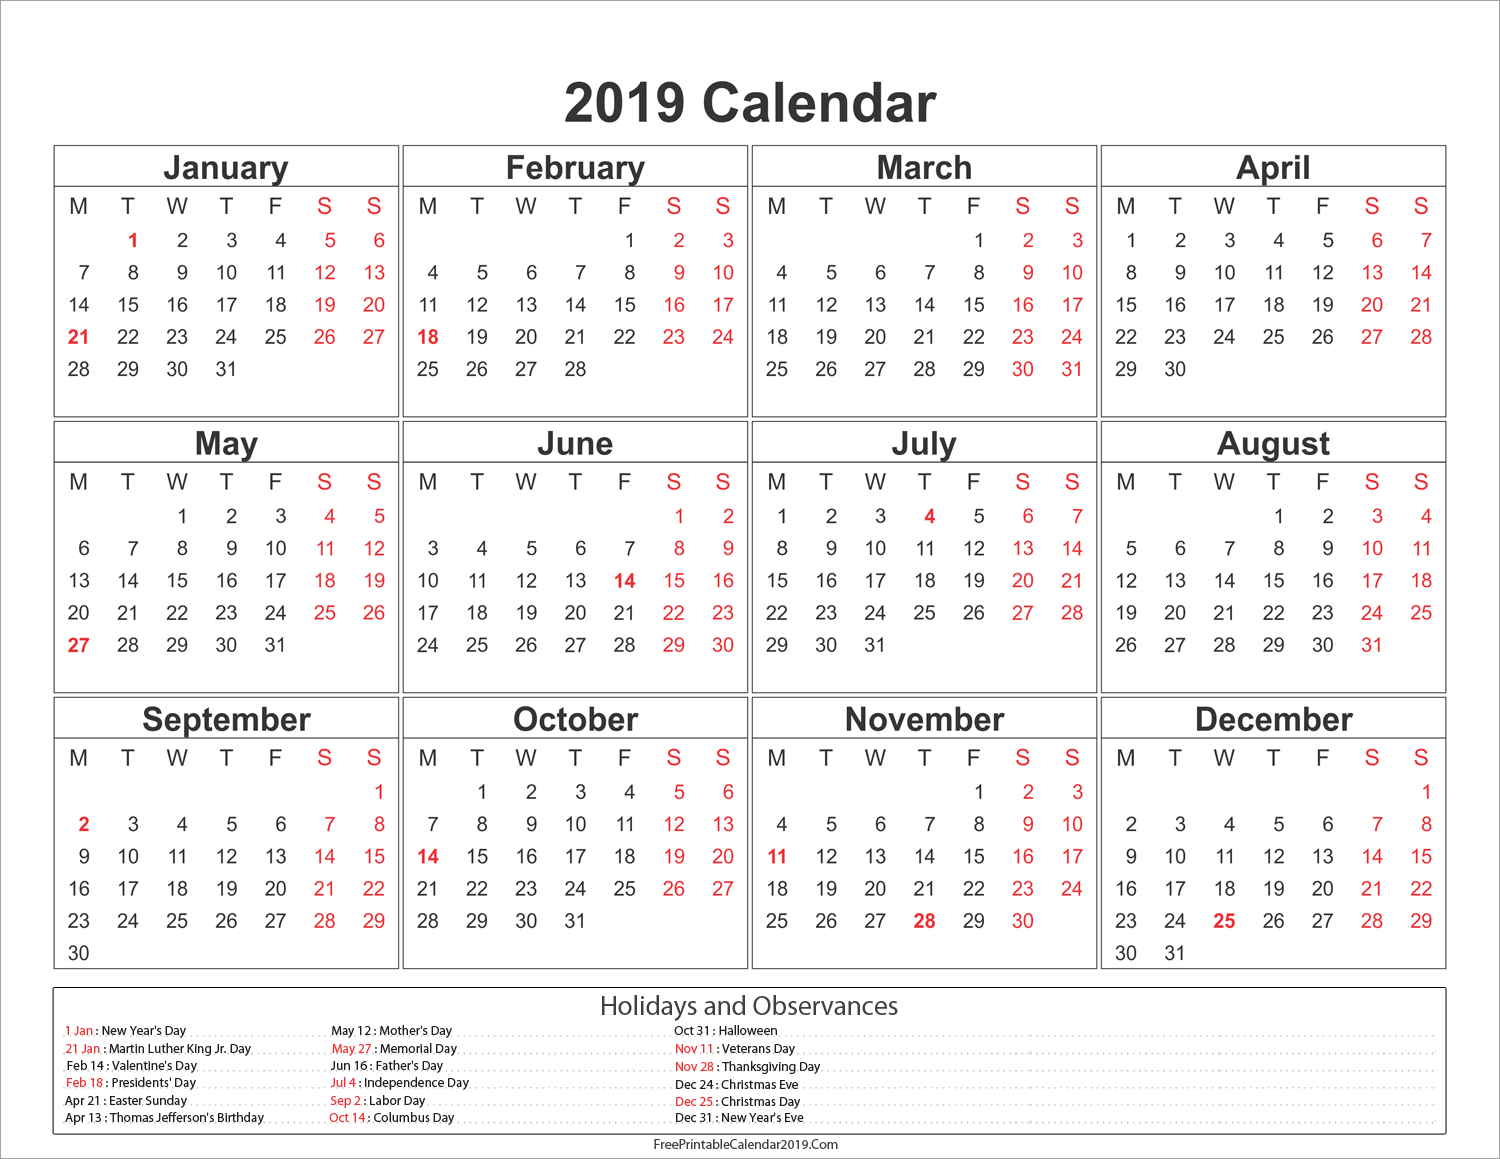 2019 Calendar With Holidays - Us, Uk, Australia, Canada - Calendar Calendar 2019 Holidays Usa